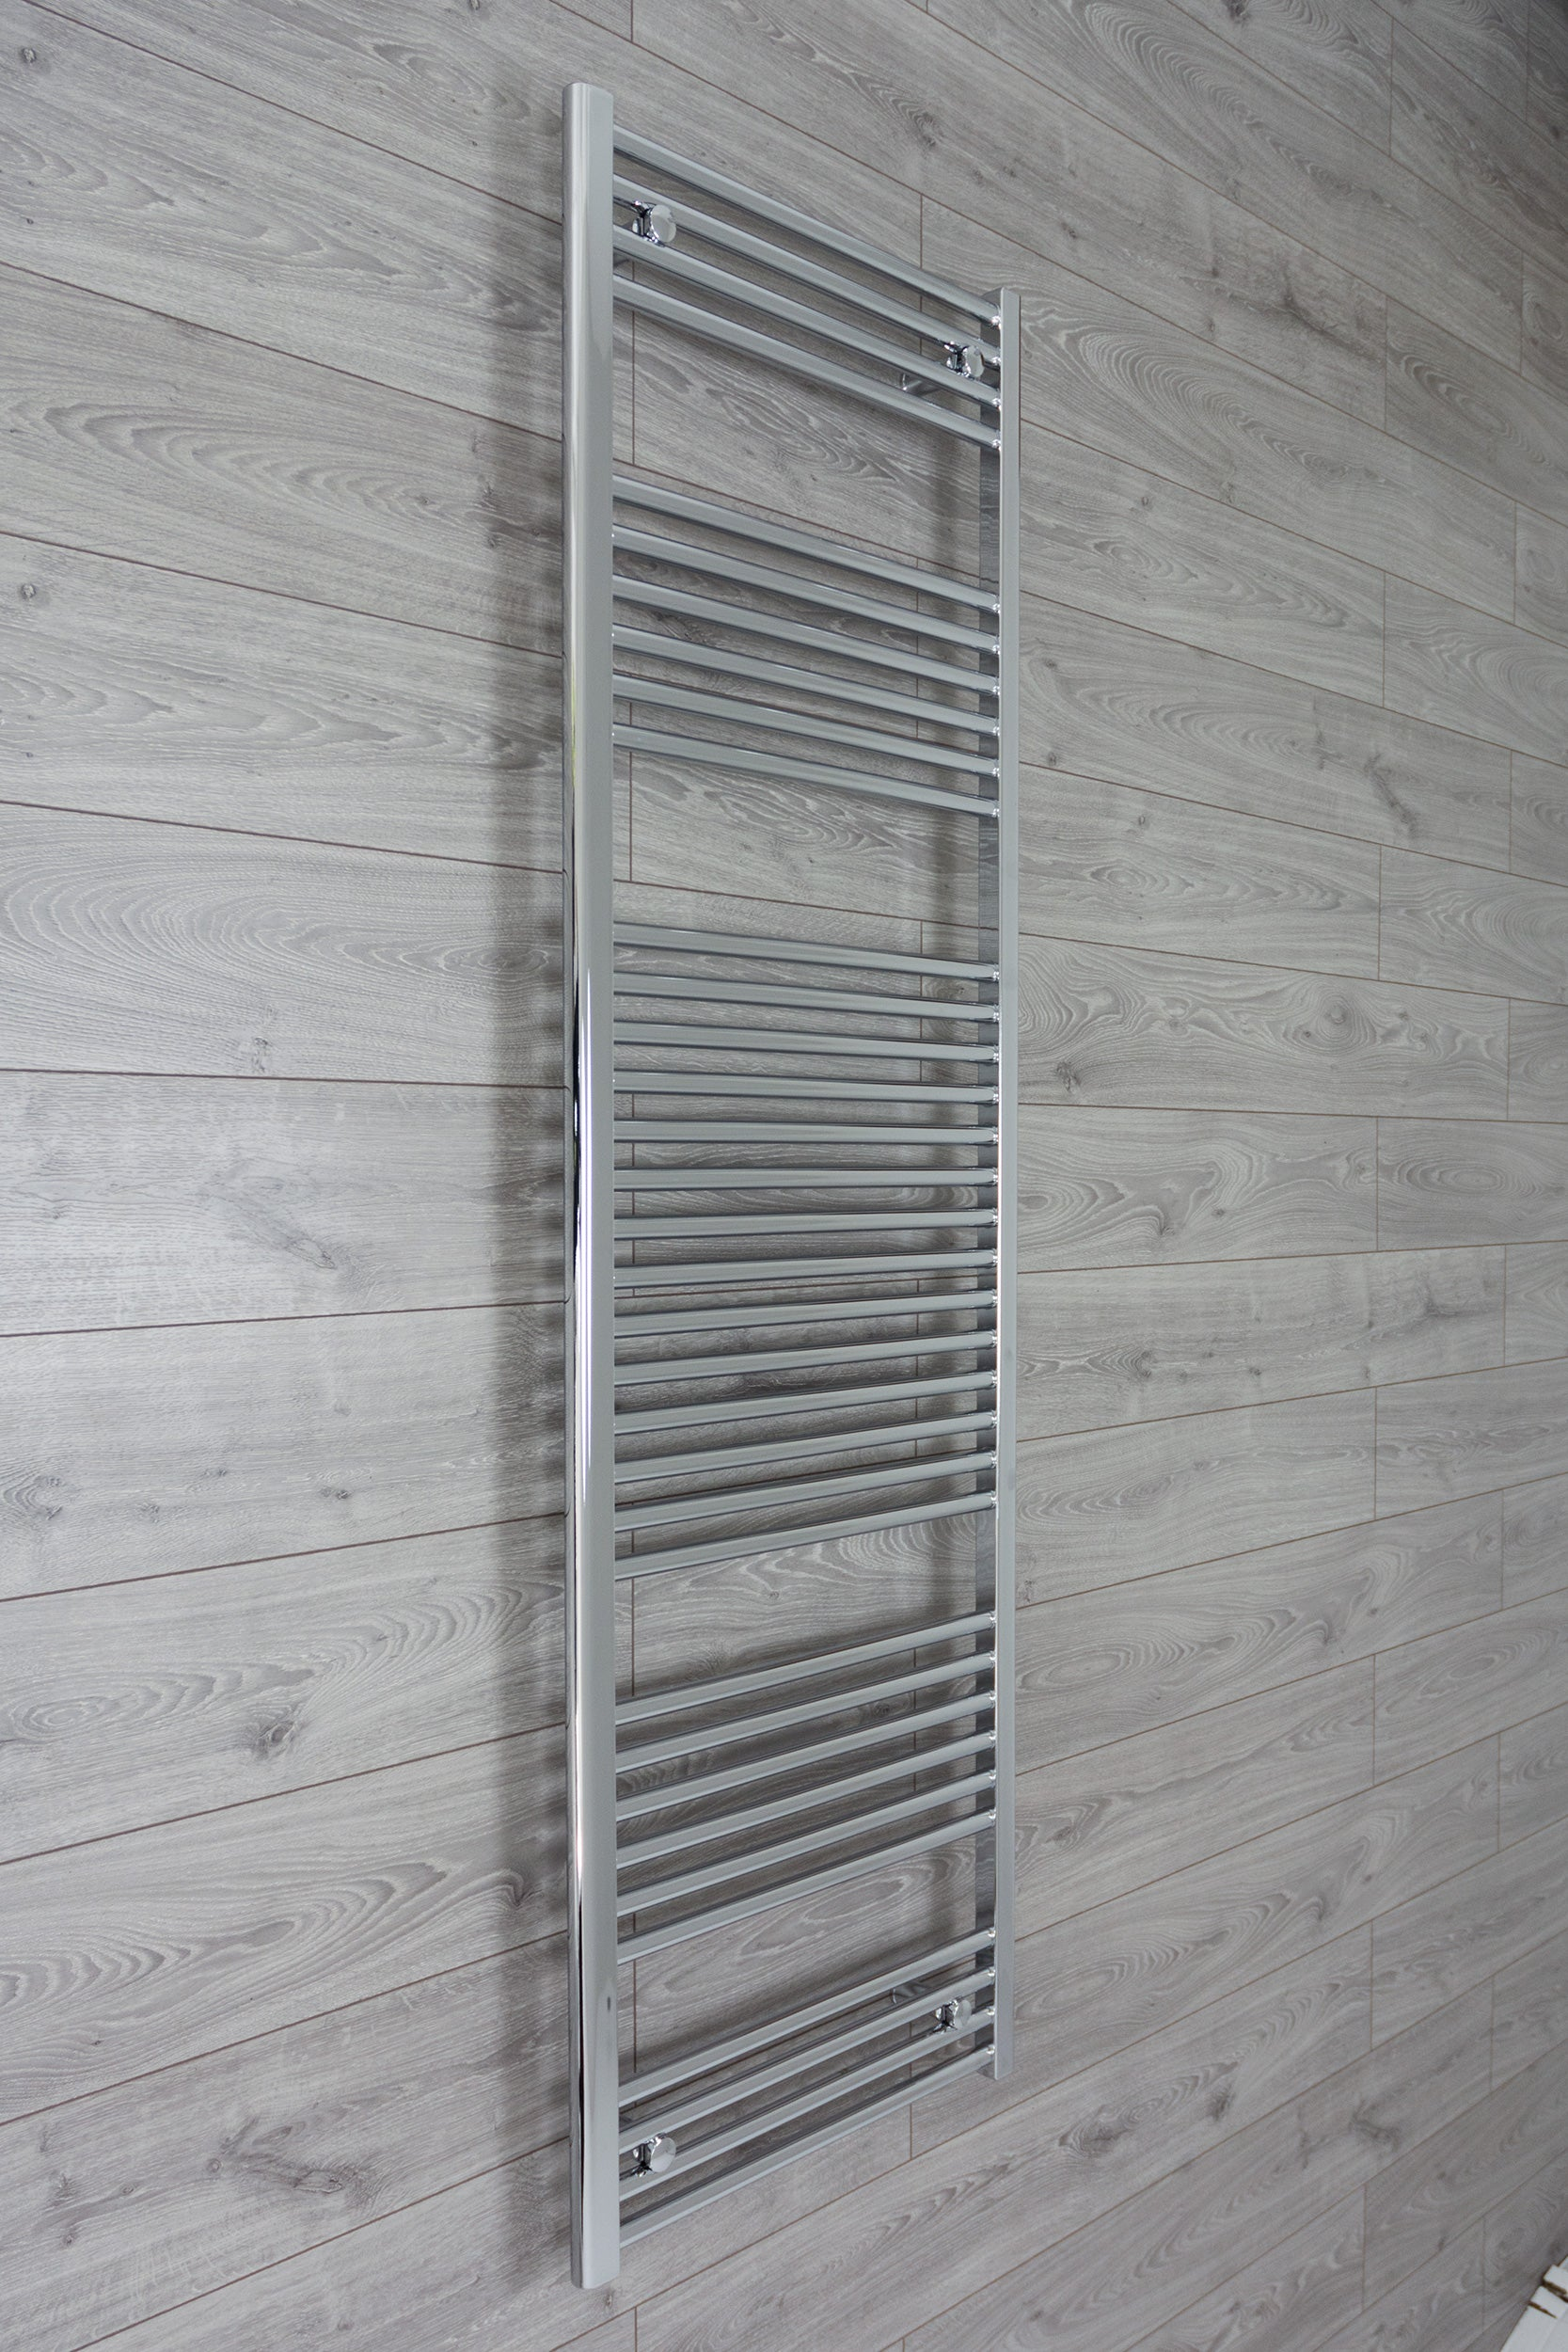 500mm Wide 1850mm High Chrome Towel Rail Radiator